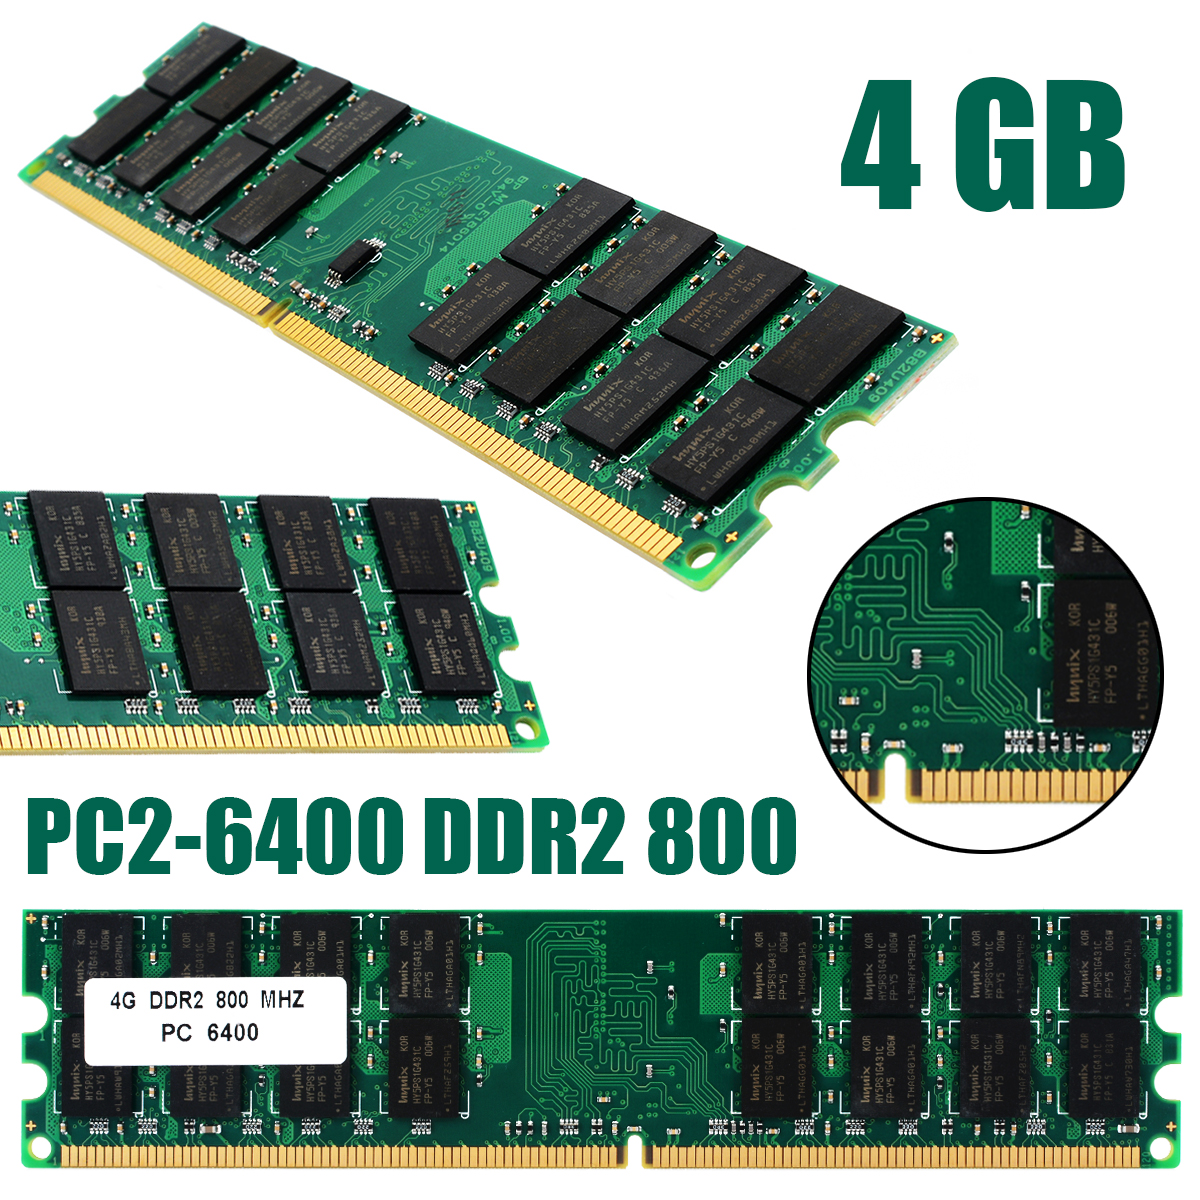 1pc Professional <font><b>4GB</b></font> PC2-6400 <font><b>DDR2</b></font> 800MHZ Non-ECC 240Pin Memory <font><b>Ram</b></font> For AMD Desktop <font><b>RAMs</b></font> New image